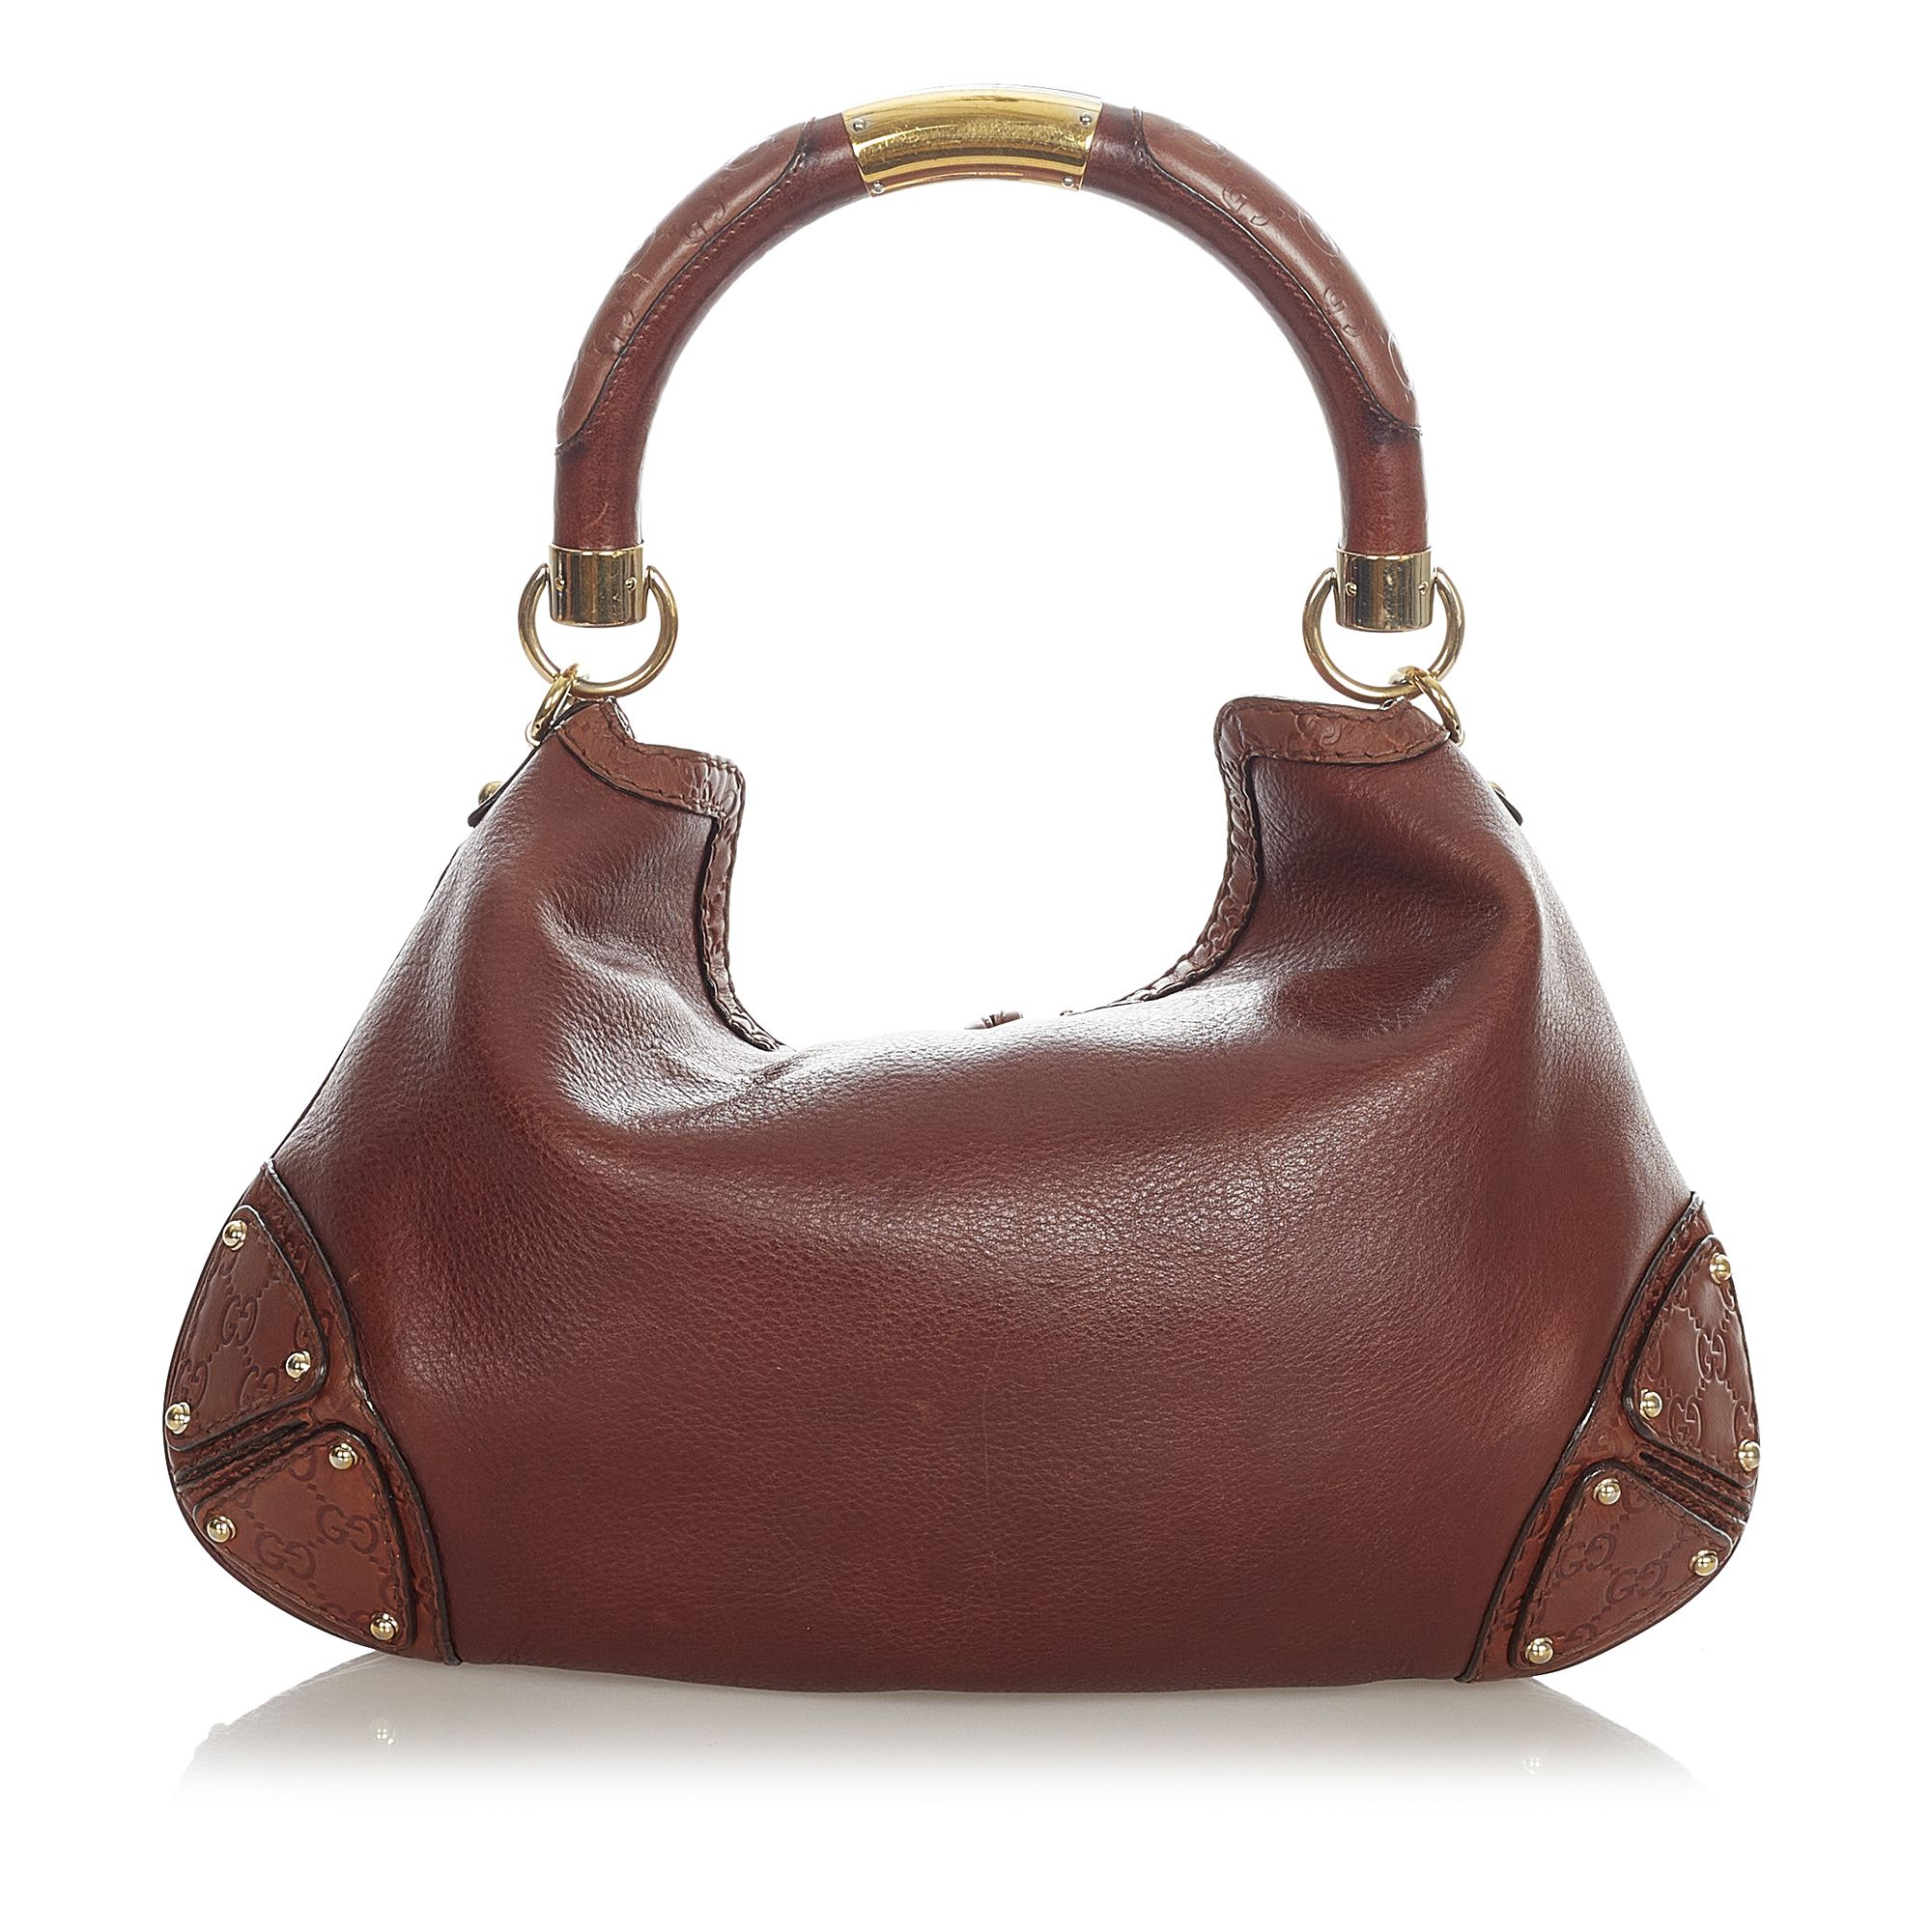 Vintage Gucci Bamboo Indy Leather Satchel Brown